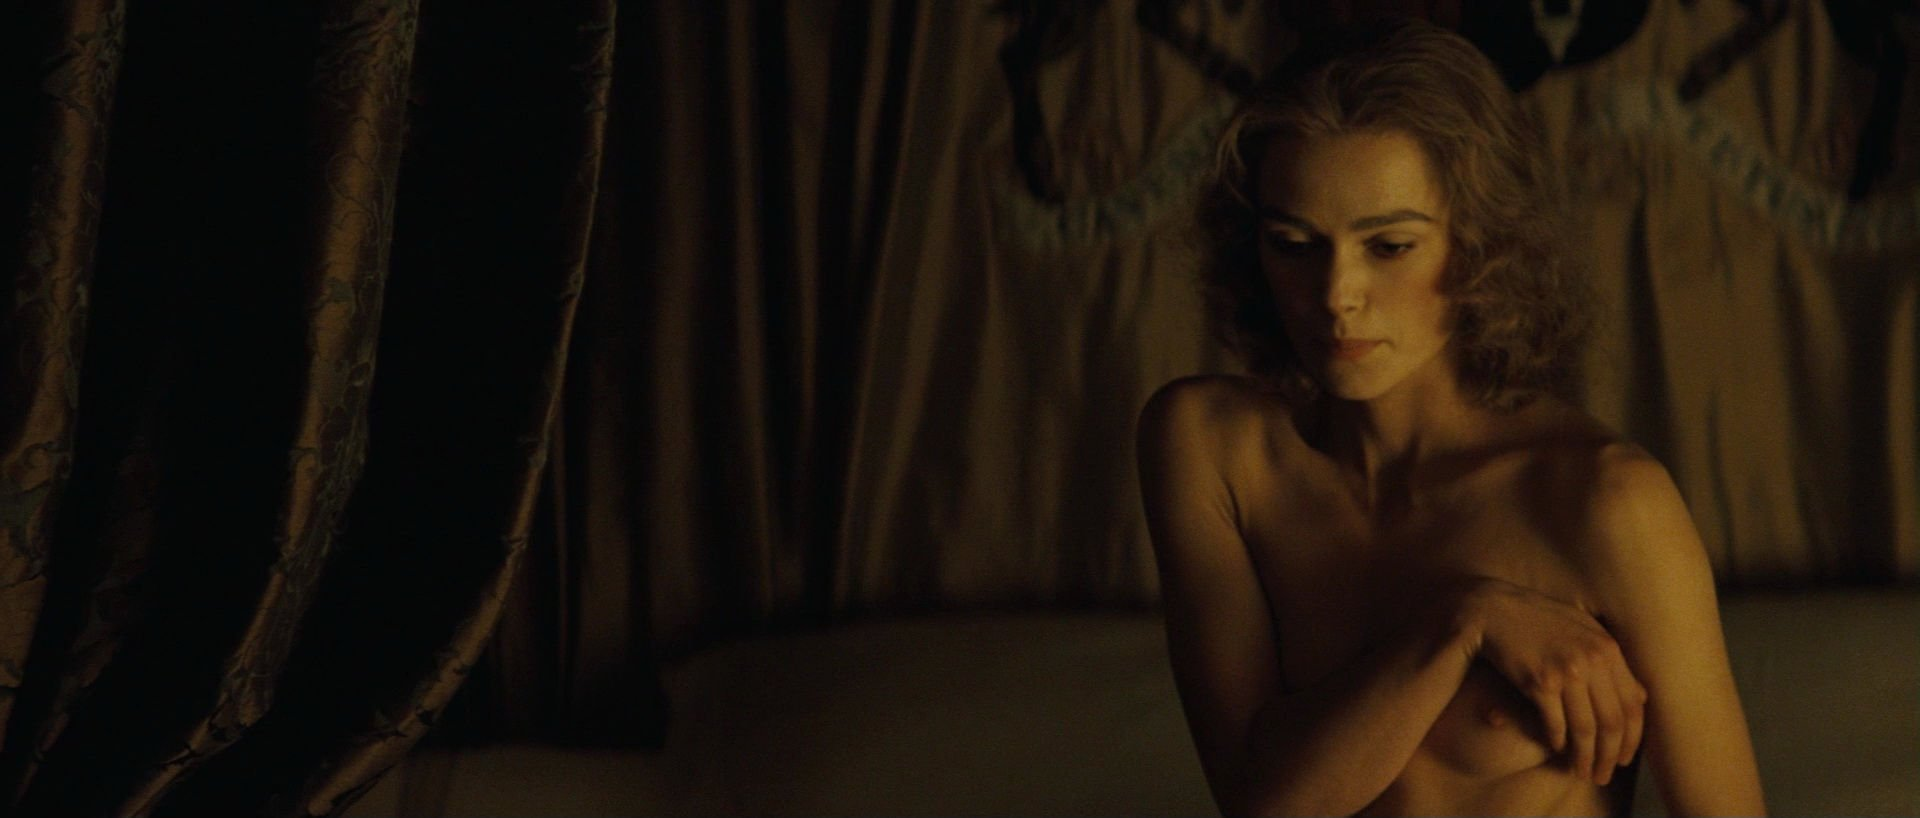 Opinion Keira knightley nude scene